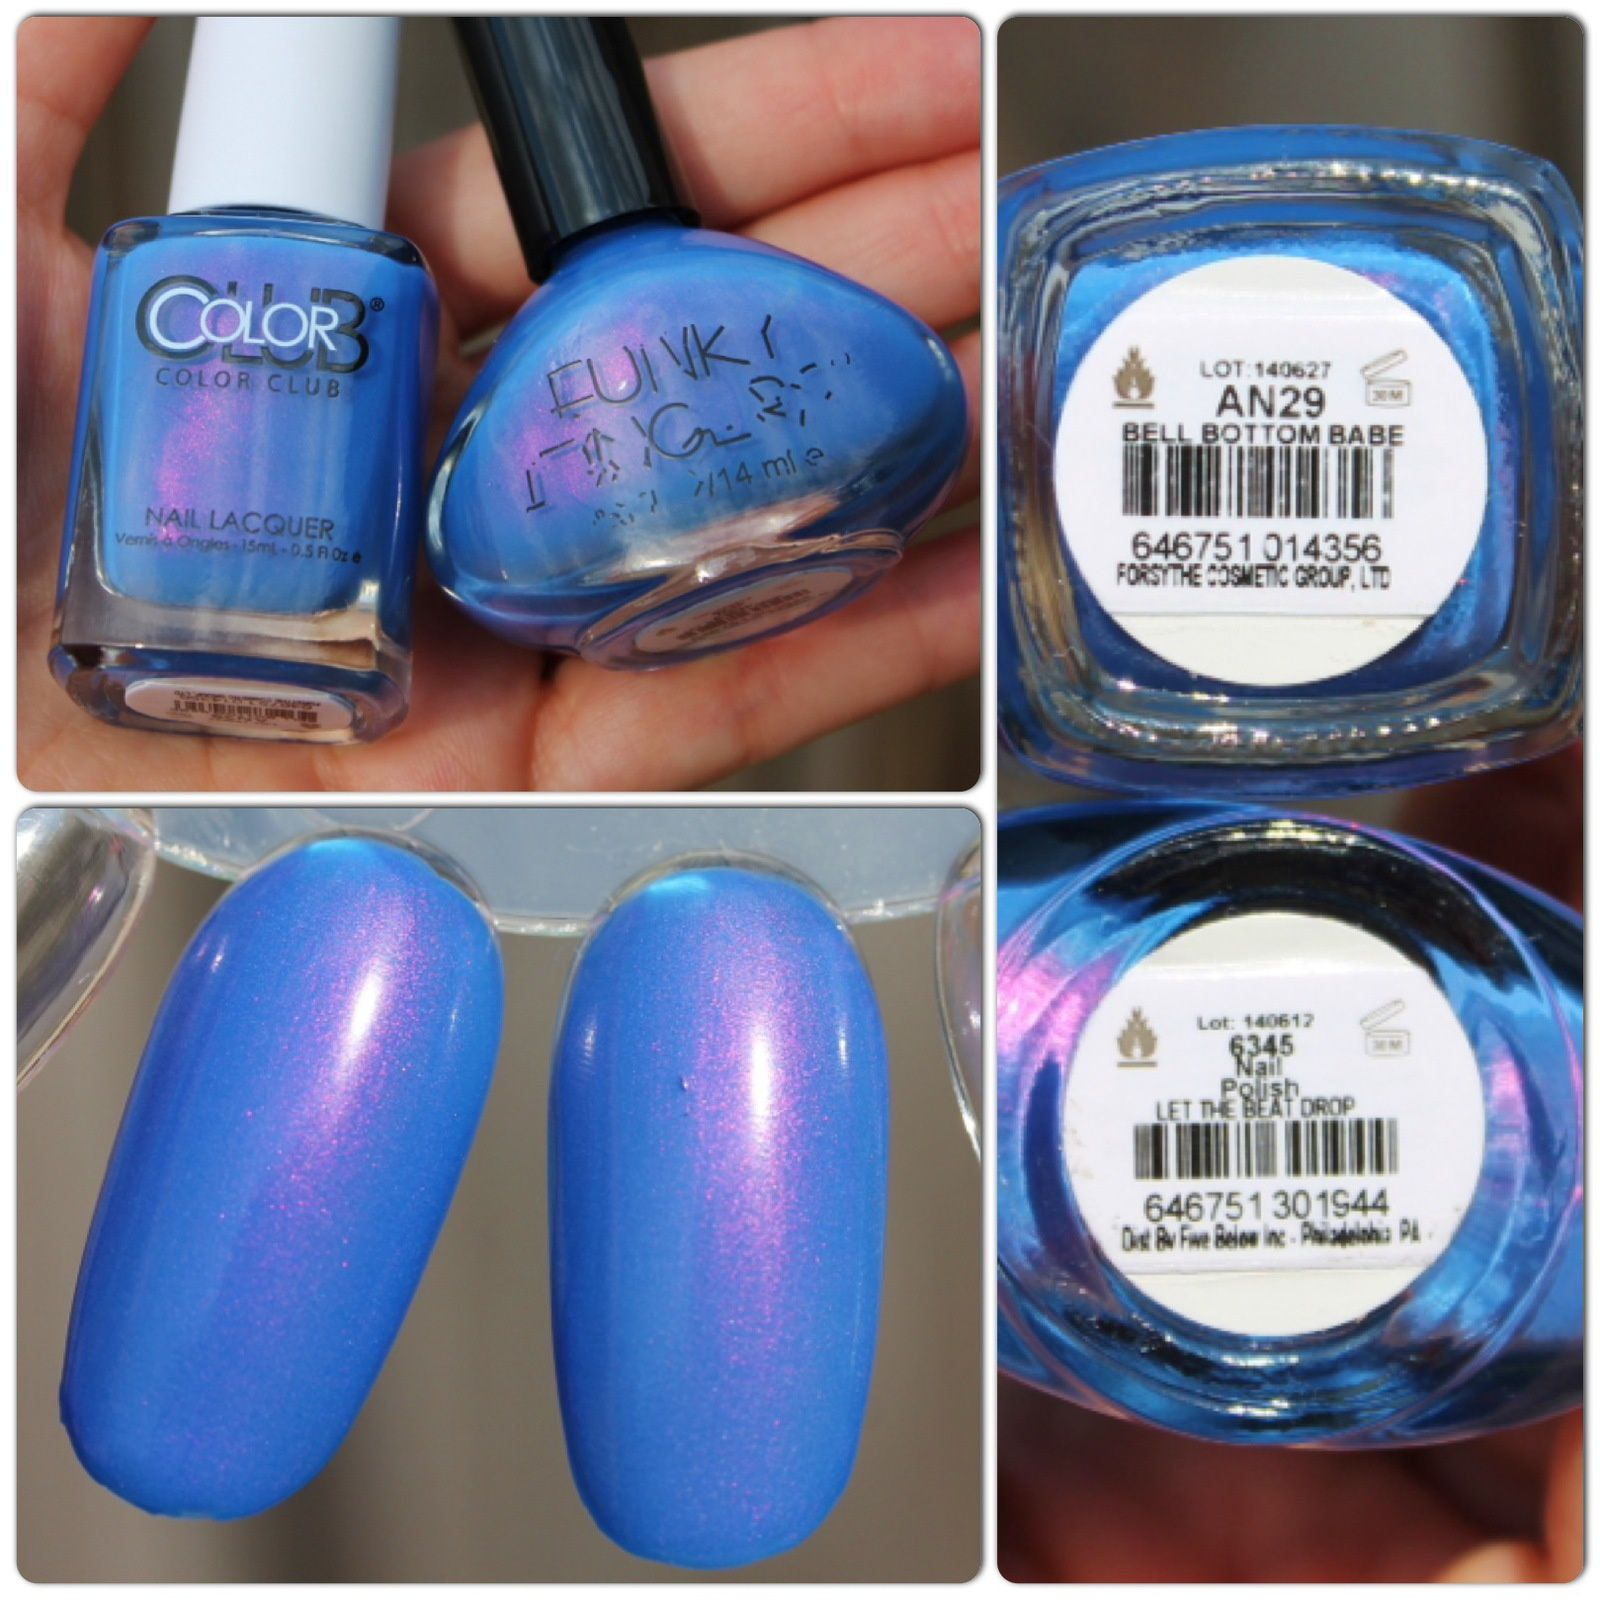 Dupe Alert! Color Club Poptastic 2014 vs. Funky Fingers Summer Neons 2014